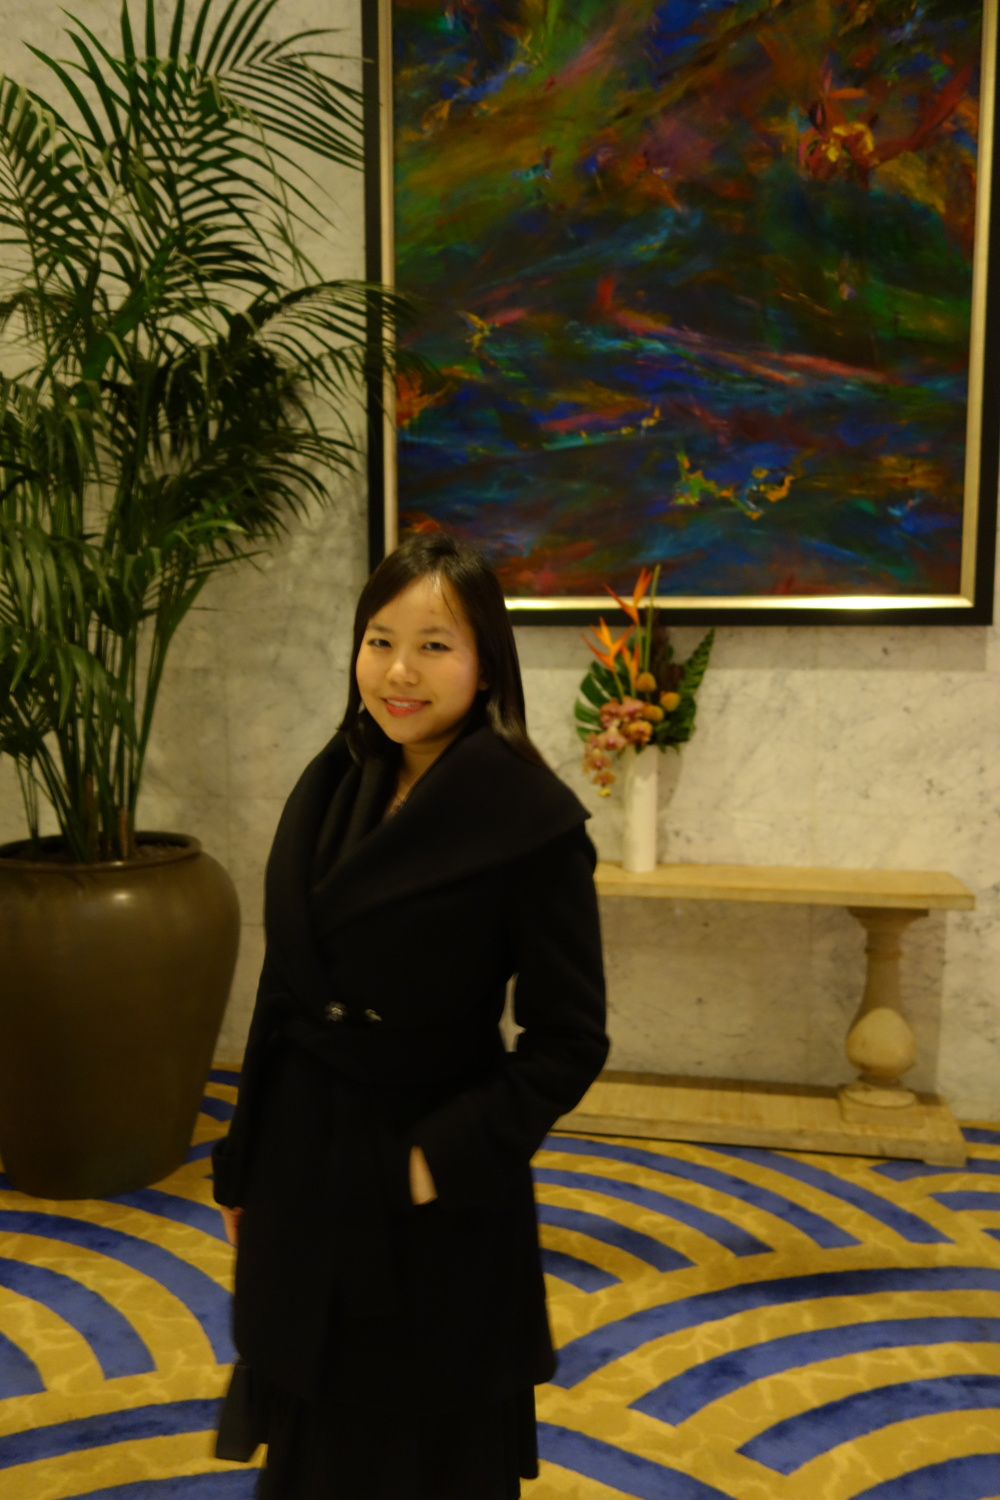 Sandy Leung in front of the large modernist oil painting and bright orange flowers at the Lobby of Hotel Nikko.